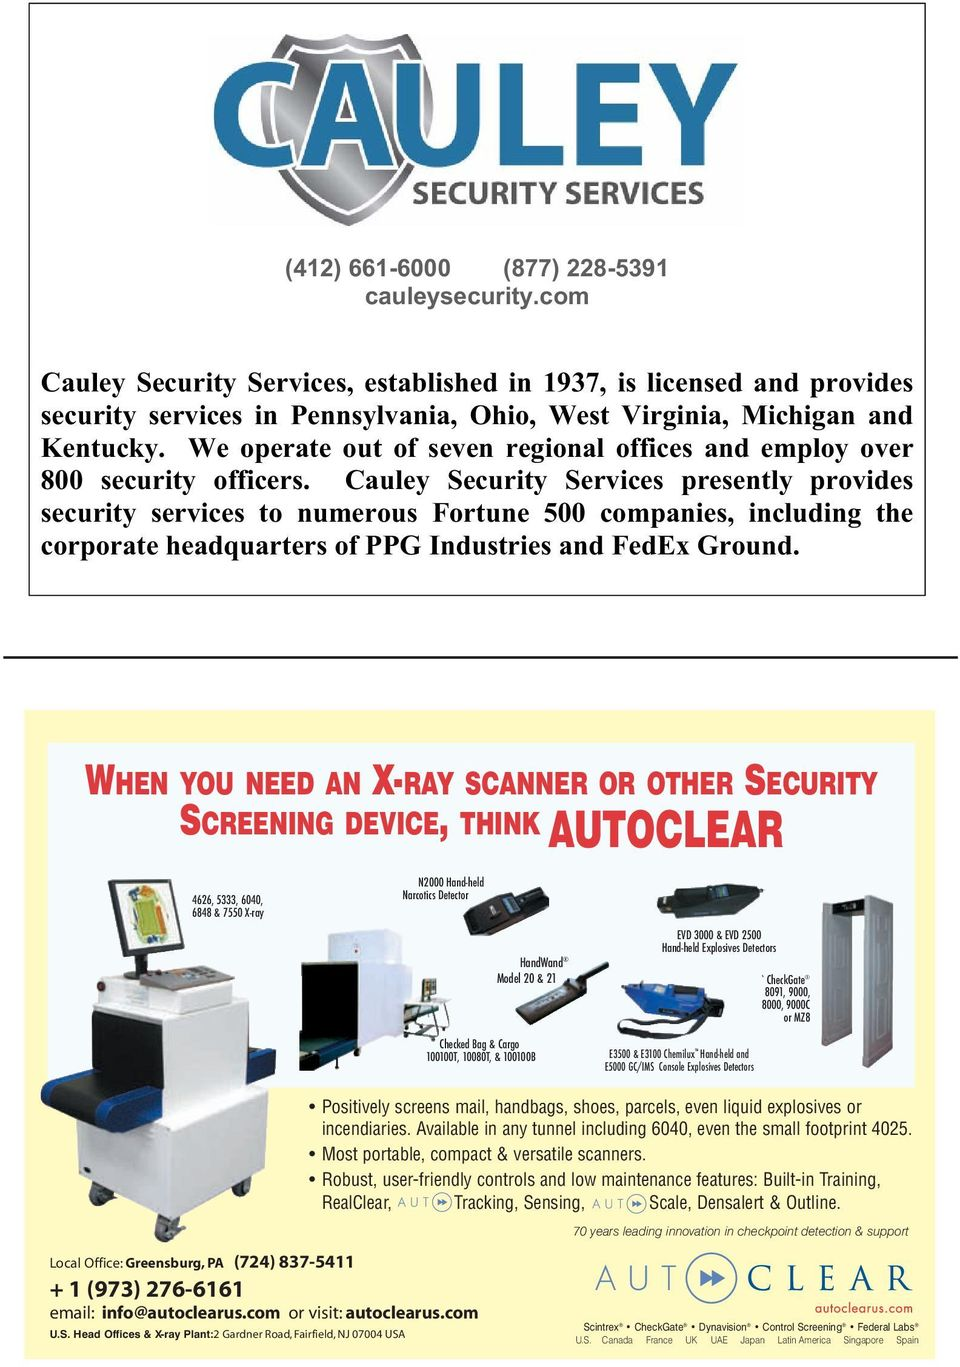 Cauley Security Services presently provides security services to numerous Fortune 500 companies, including the corporate headquarters of PPG Industries and FedEx Ground.